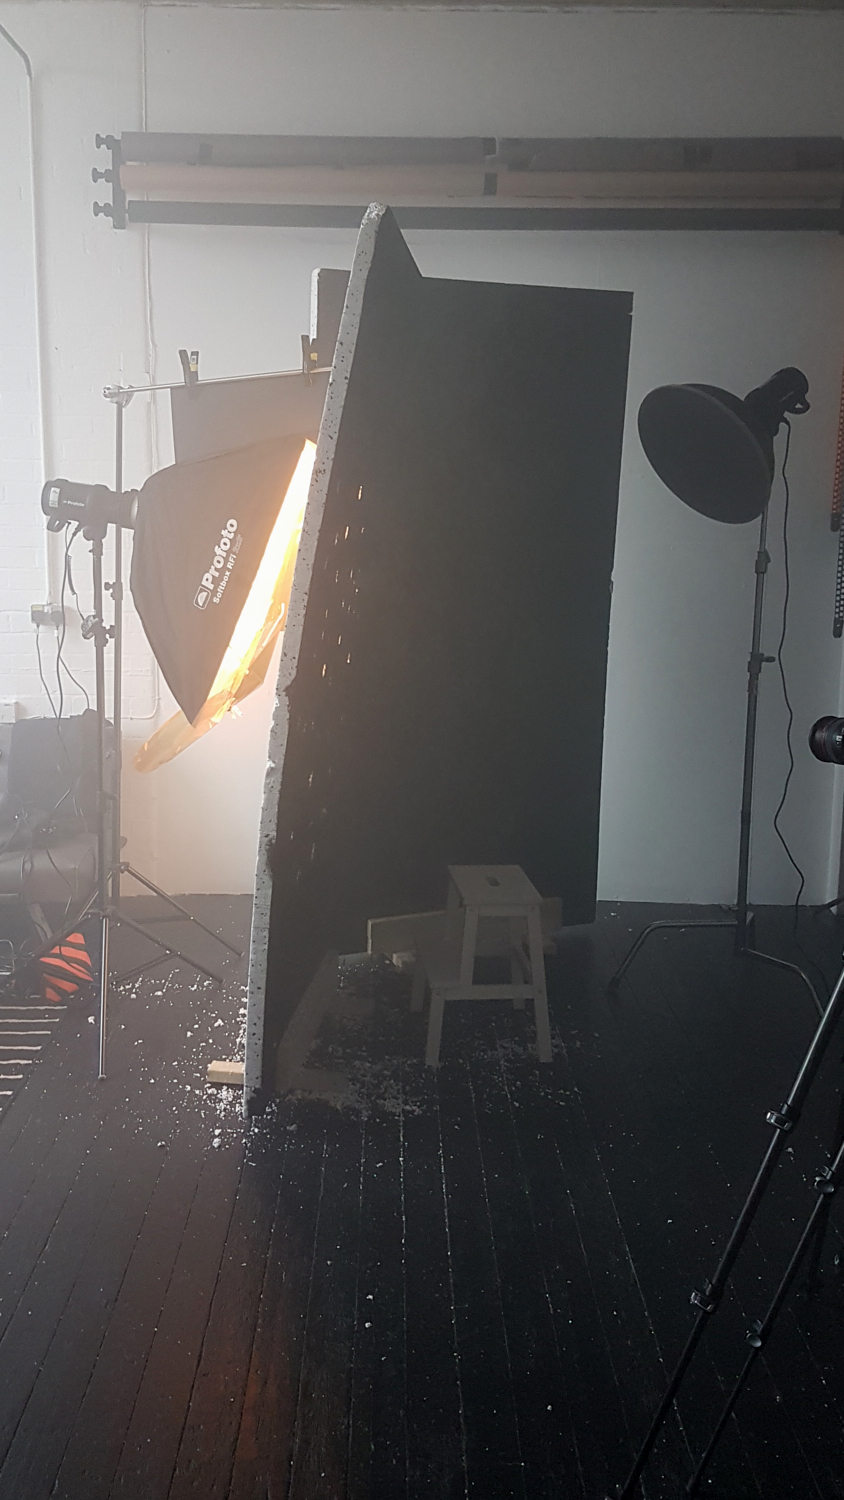 lighting-setup.jpg